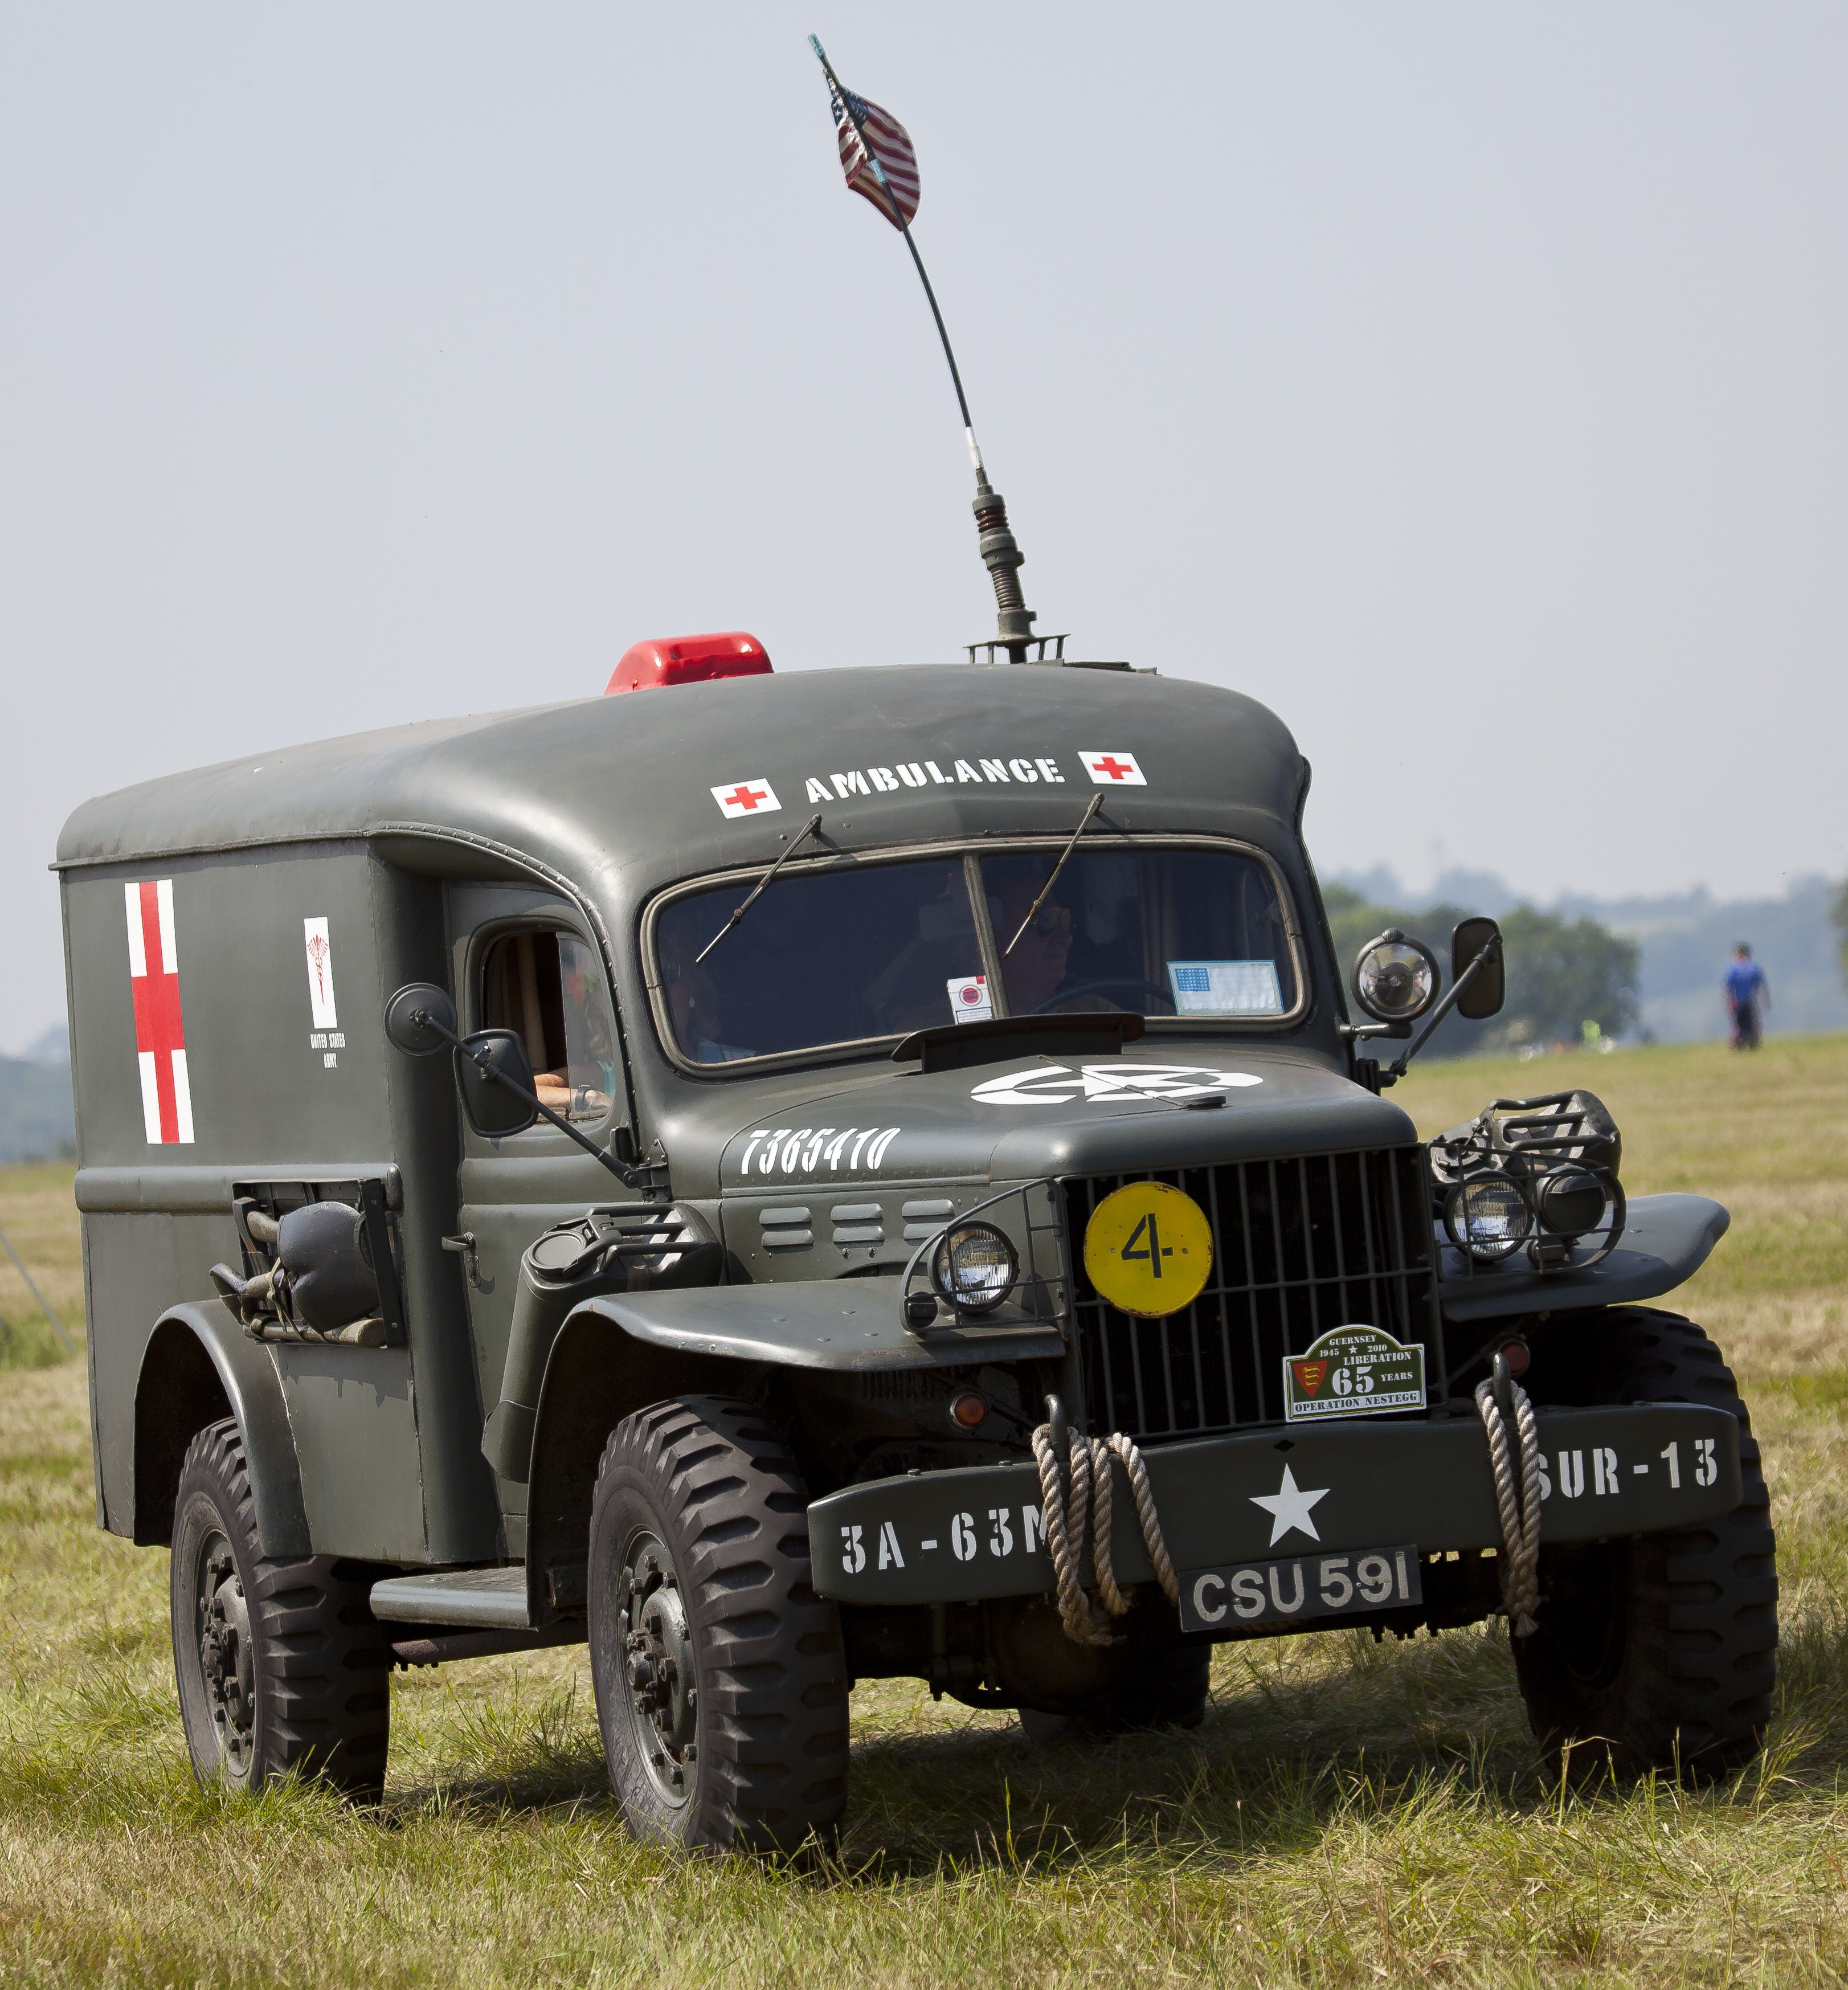 pin by calvin tynes on rare and or strange war machines vintage ambulance collection w byrdny riverview west kildonan ambulance service winnipeg